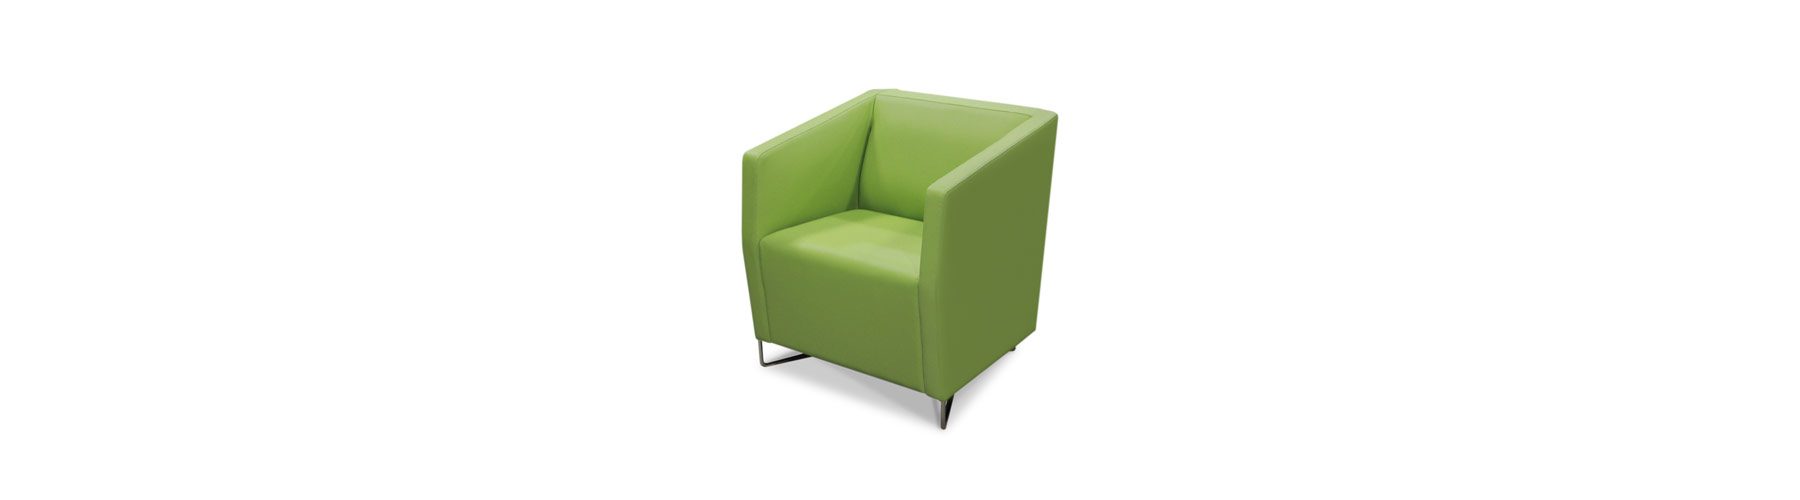 Cubo - Fauteuil William